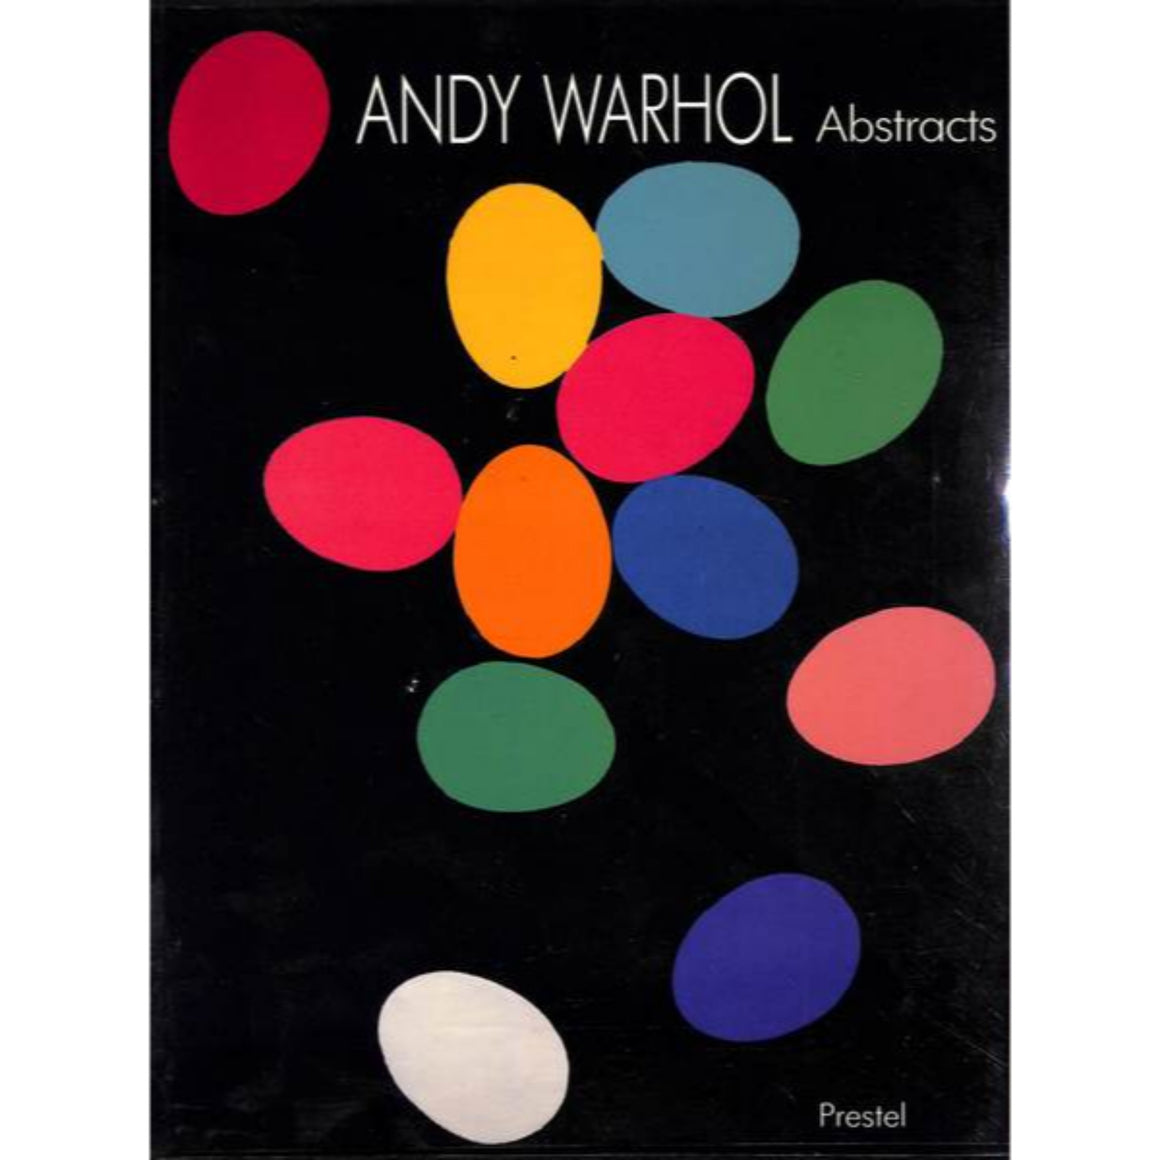 'Andy Warhol Abstracts' 1993 Edited by Thomas Kellein